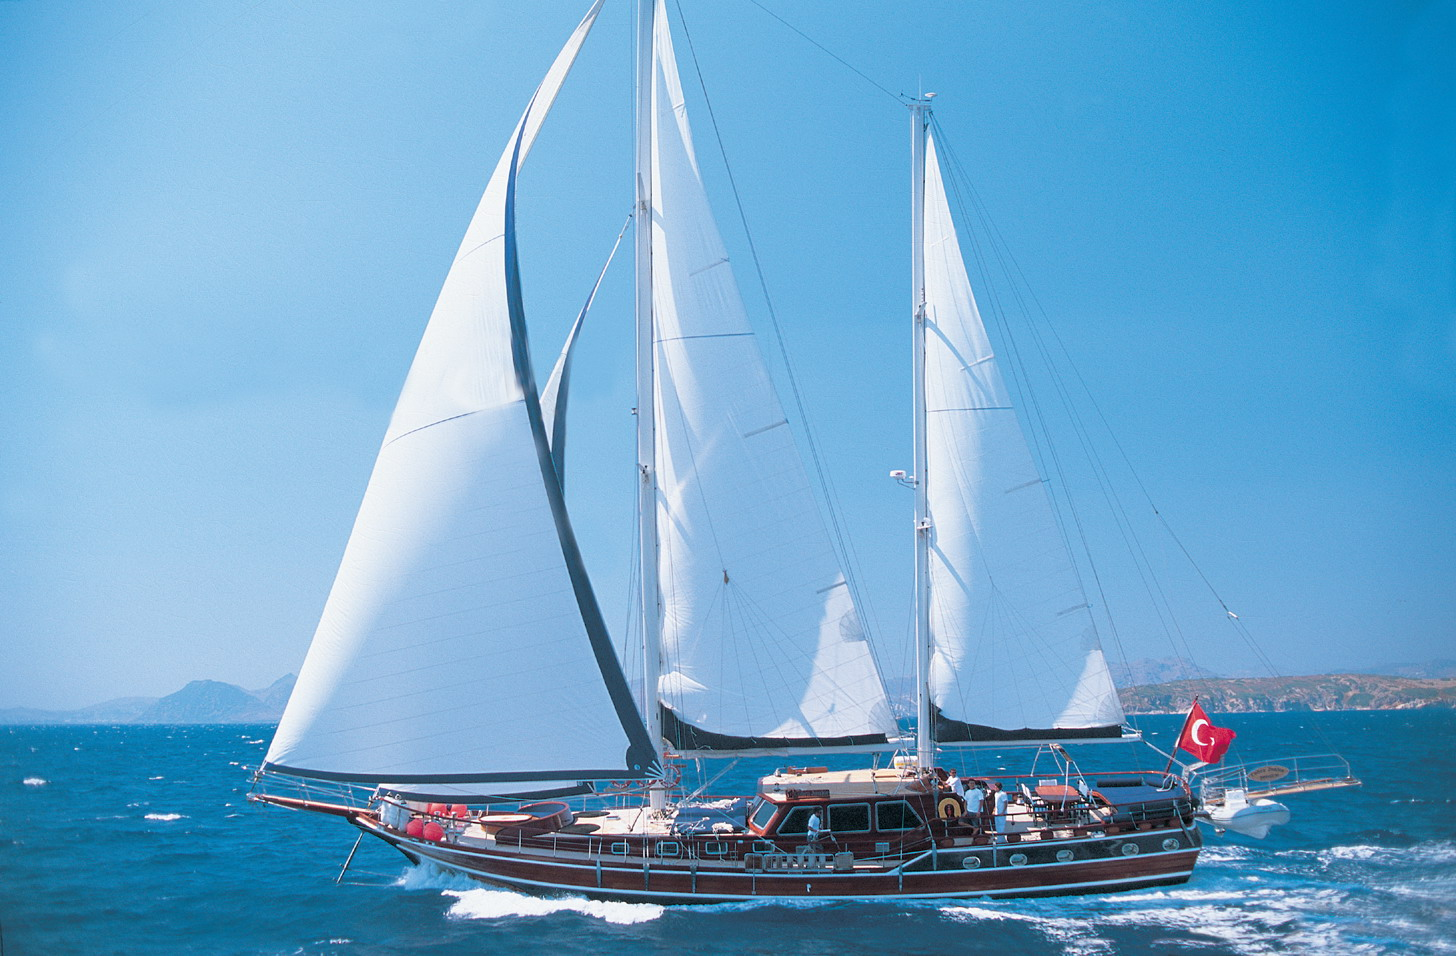 SWAY (ex COBRA JUNIOR),DELUX GULETS, Yachts for Rent, Yacht Charter, Yacht Rental